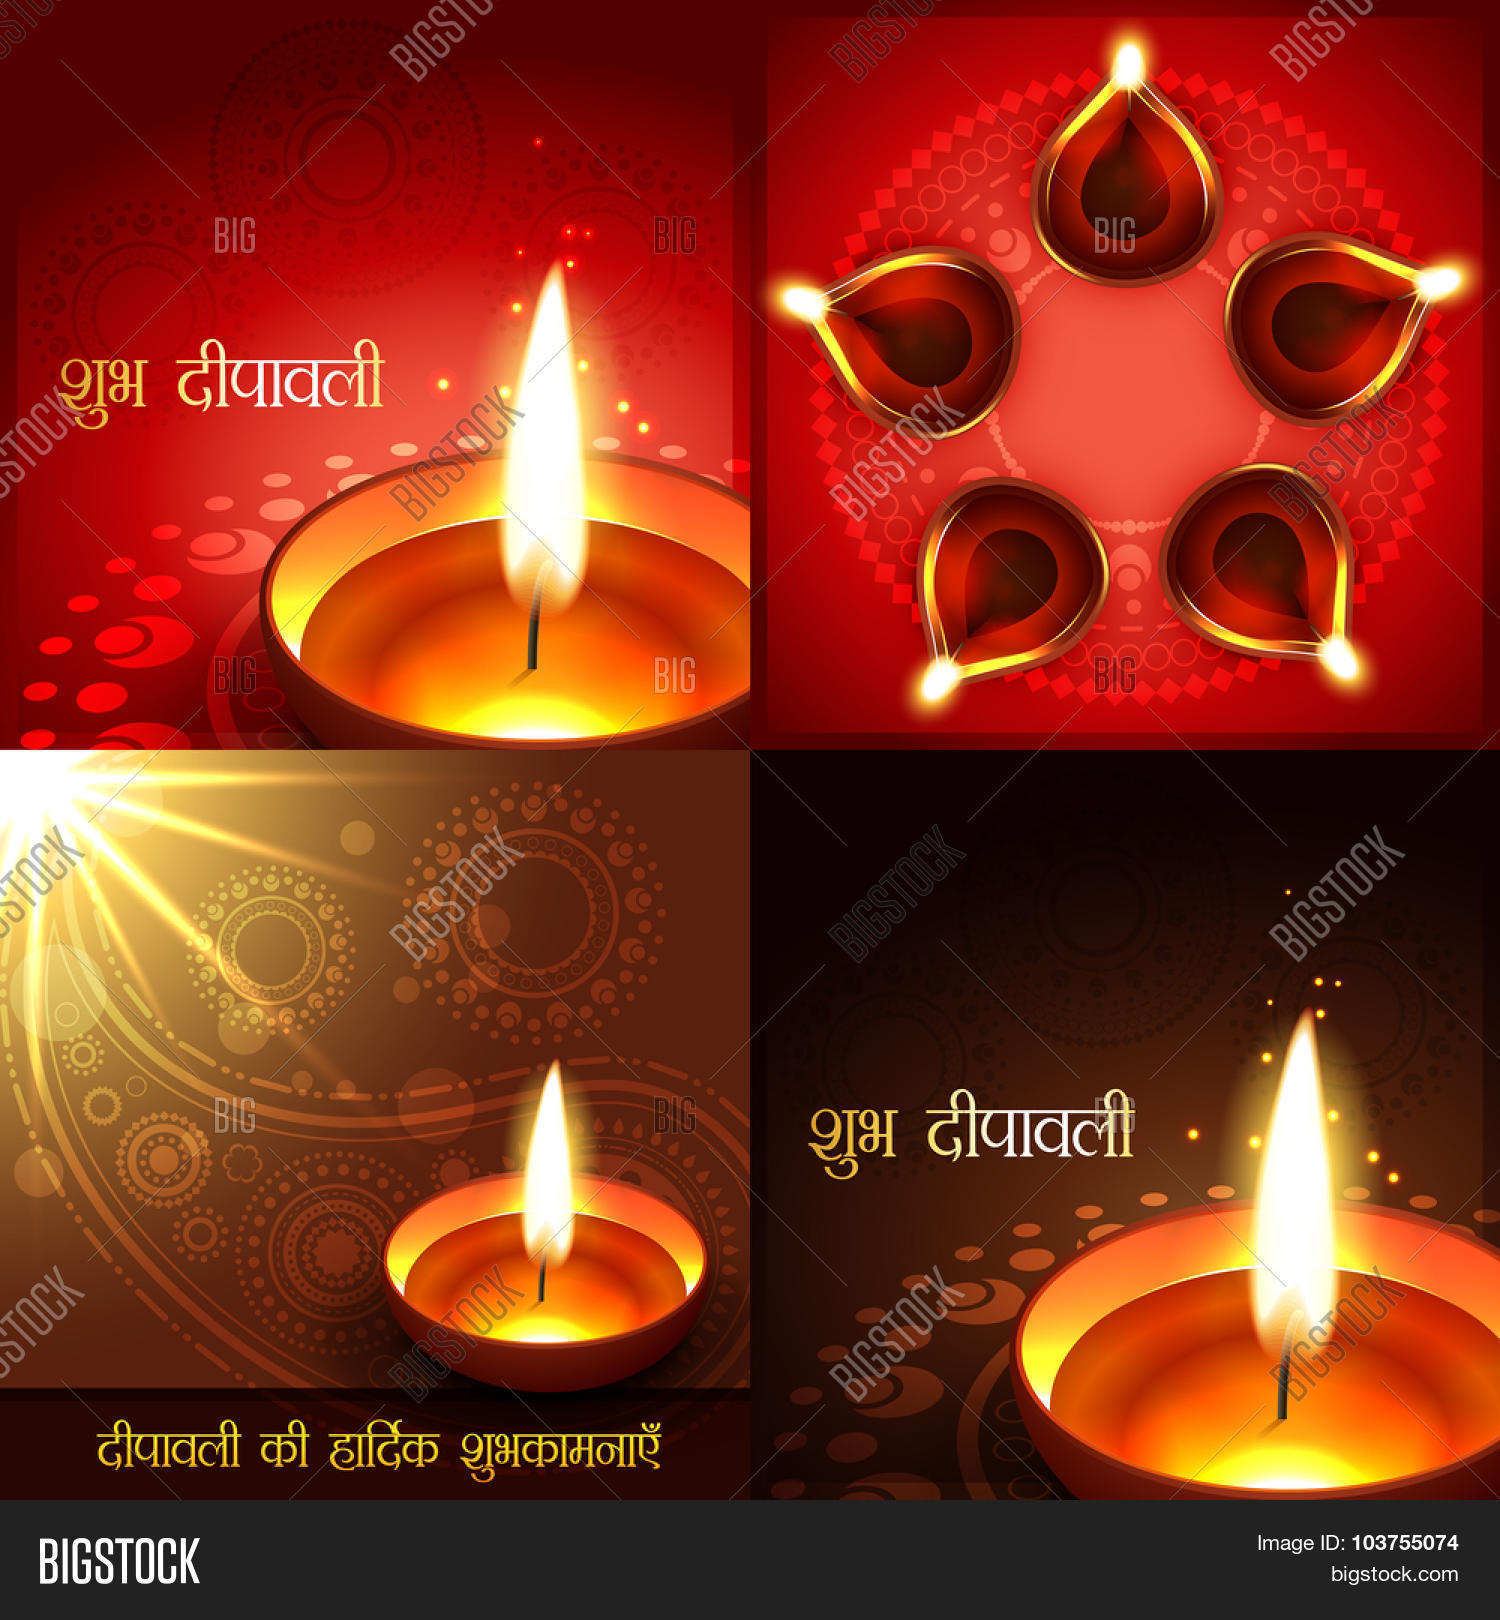 Vector set beautiful diwali vector photo bigstock vector set of beautiful diwali background illustration shubh deepawali translation happy diwali m4hsunfo